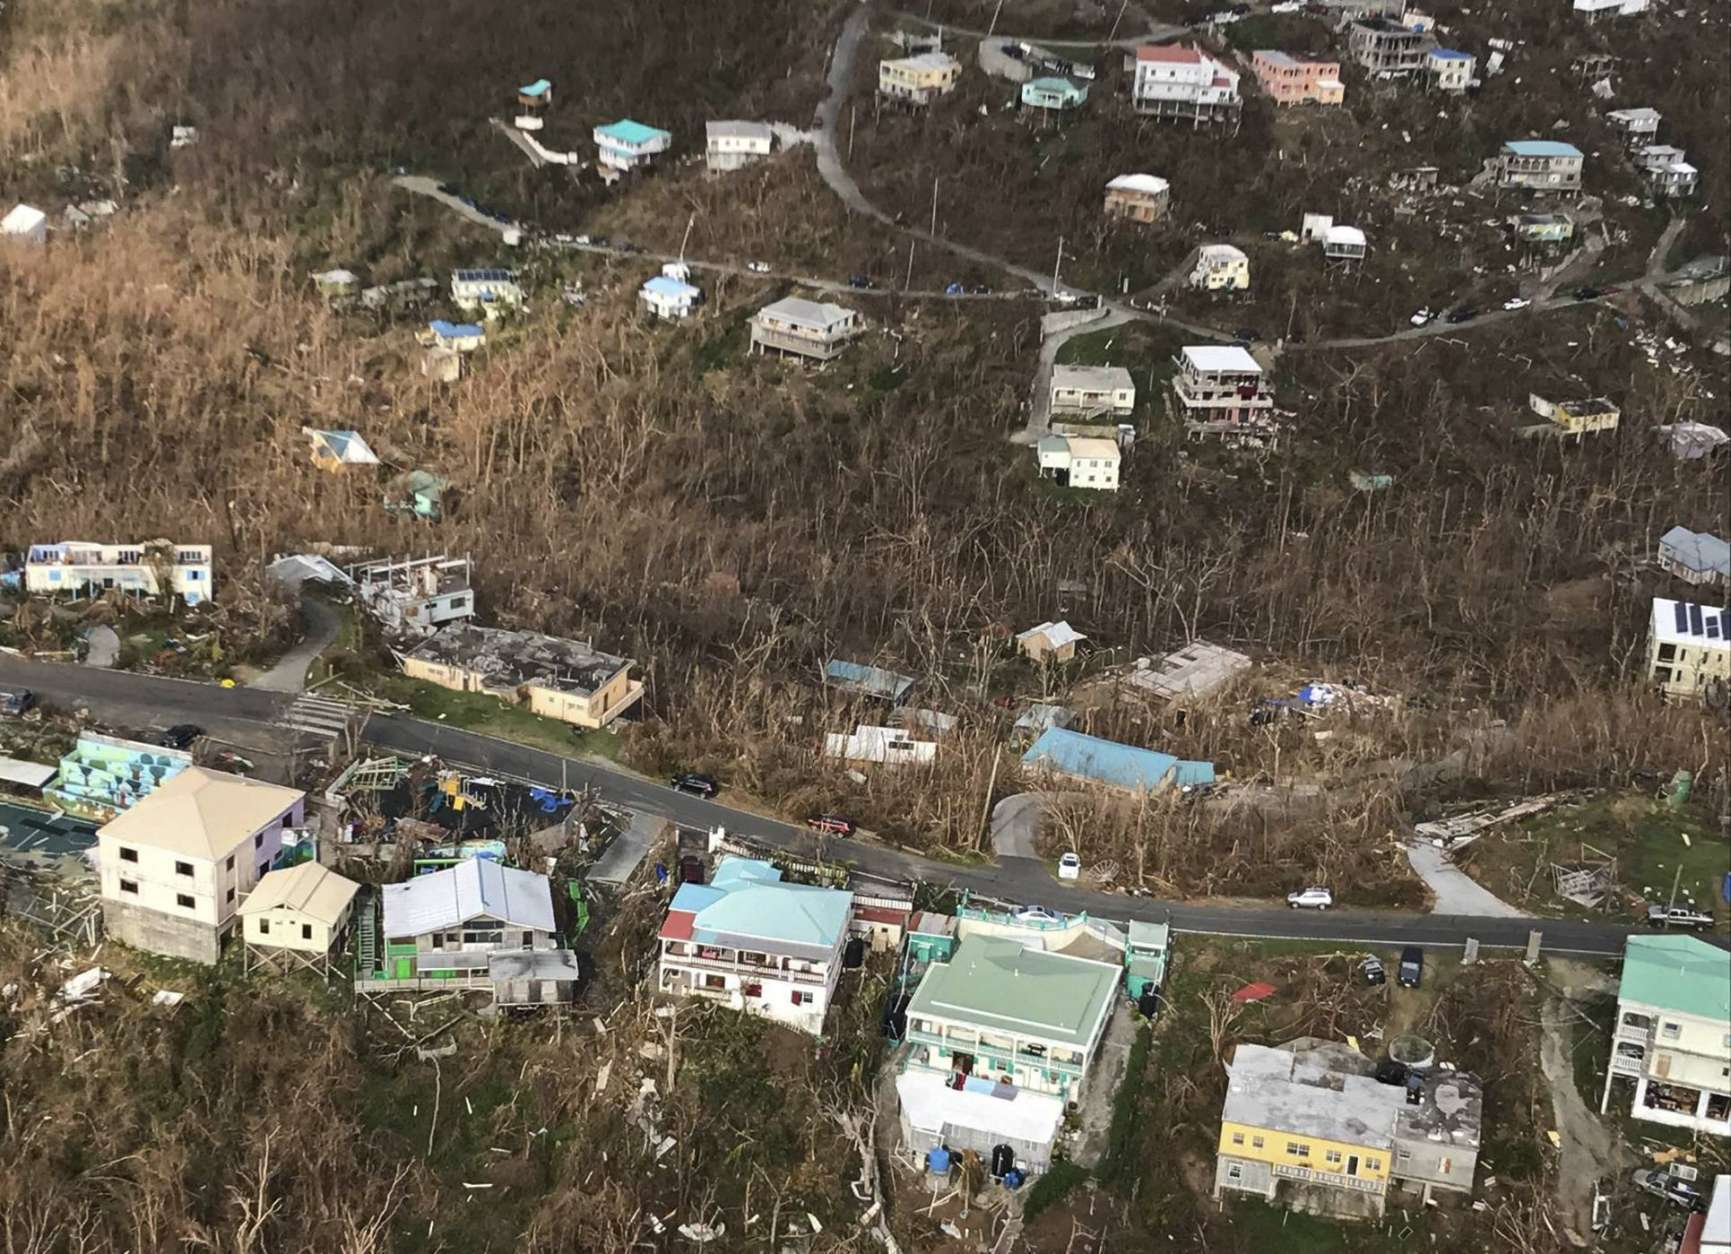 This photo provided by Caribbean Buzz Helicopters on Tuesday, Sept. 12, 2017, shows storm damage in the aftermath of Hurricane Irma in Cruz Bay, St. John, U.S. Virgin Islands. (Caribbean Buzz Helicopters via AP)